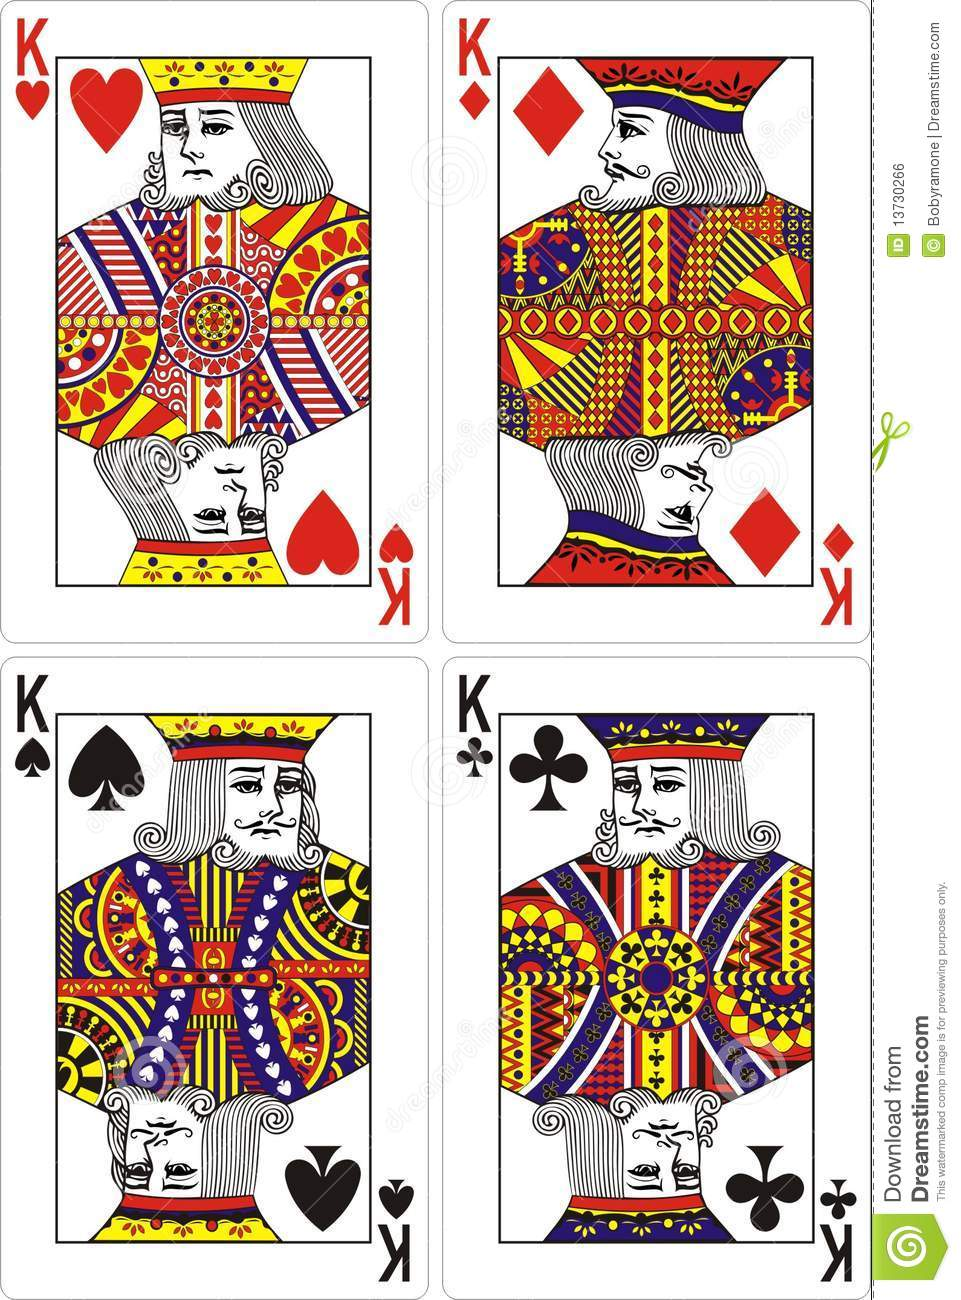 4 kings casino and card club